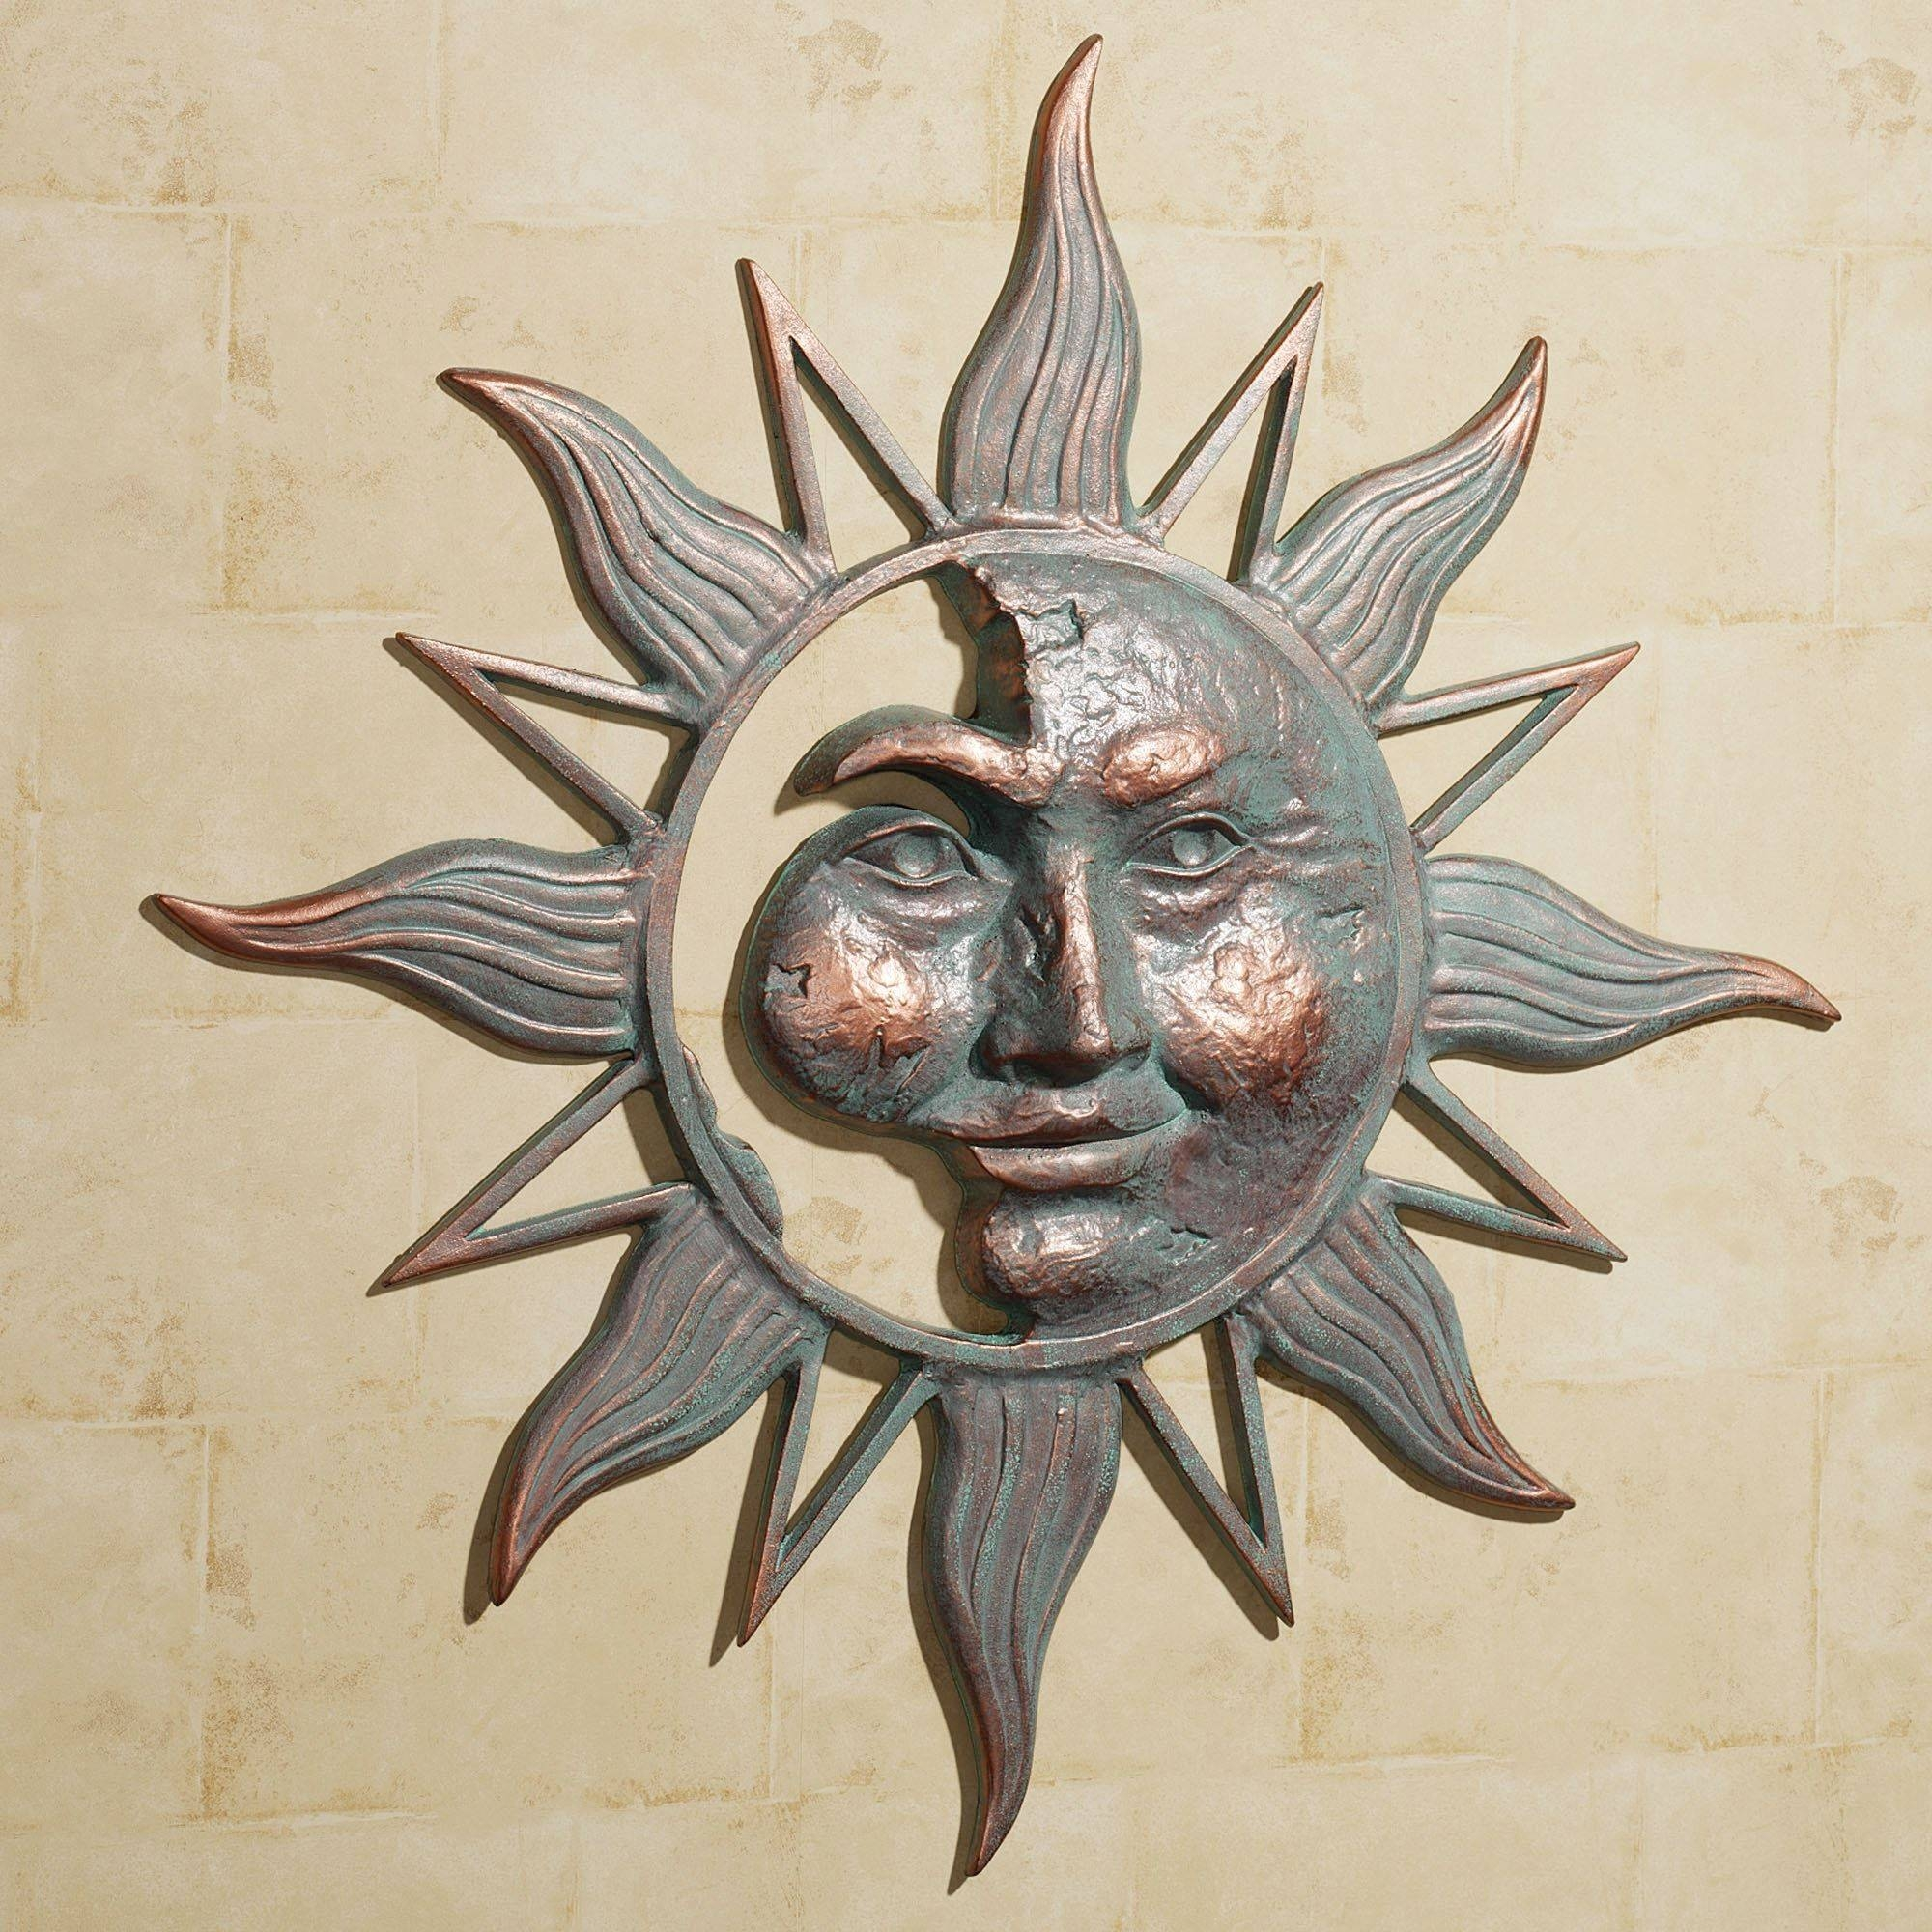 Garden Wall Decorations Outdoor Metal Art Outdoor Metal Wall Decor Throughout Recent Outdoor Large Metal Wall Art (View 3 of 20)